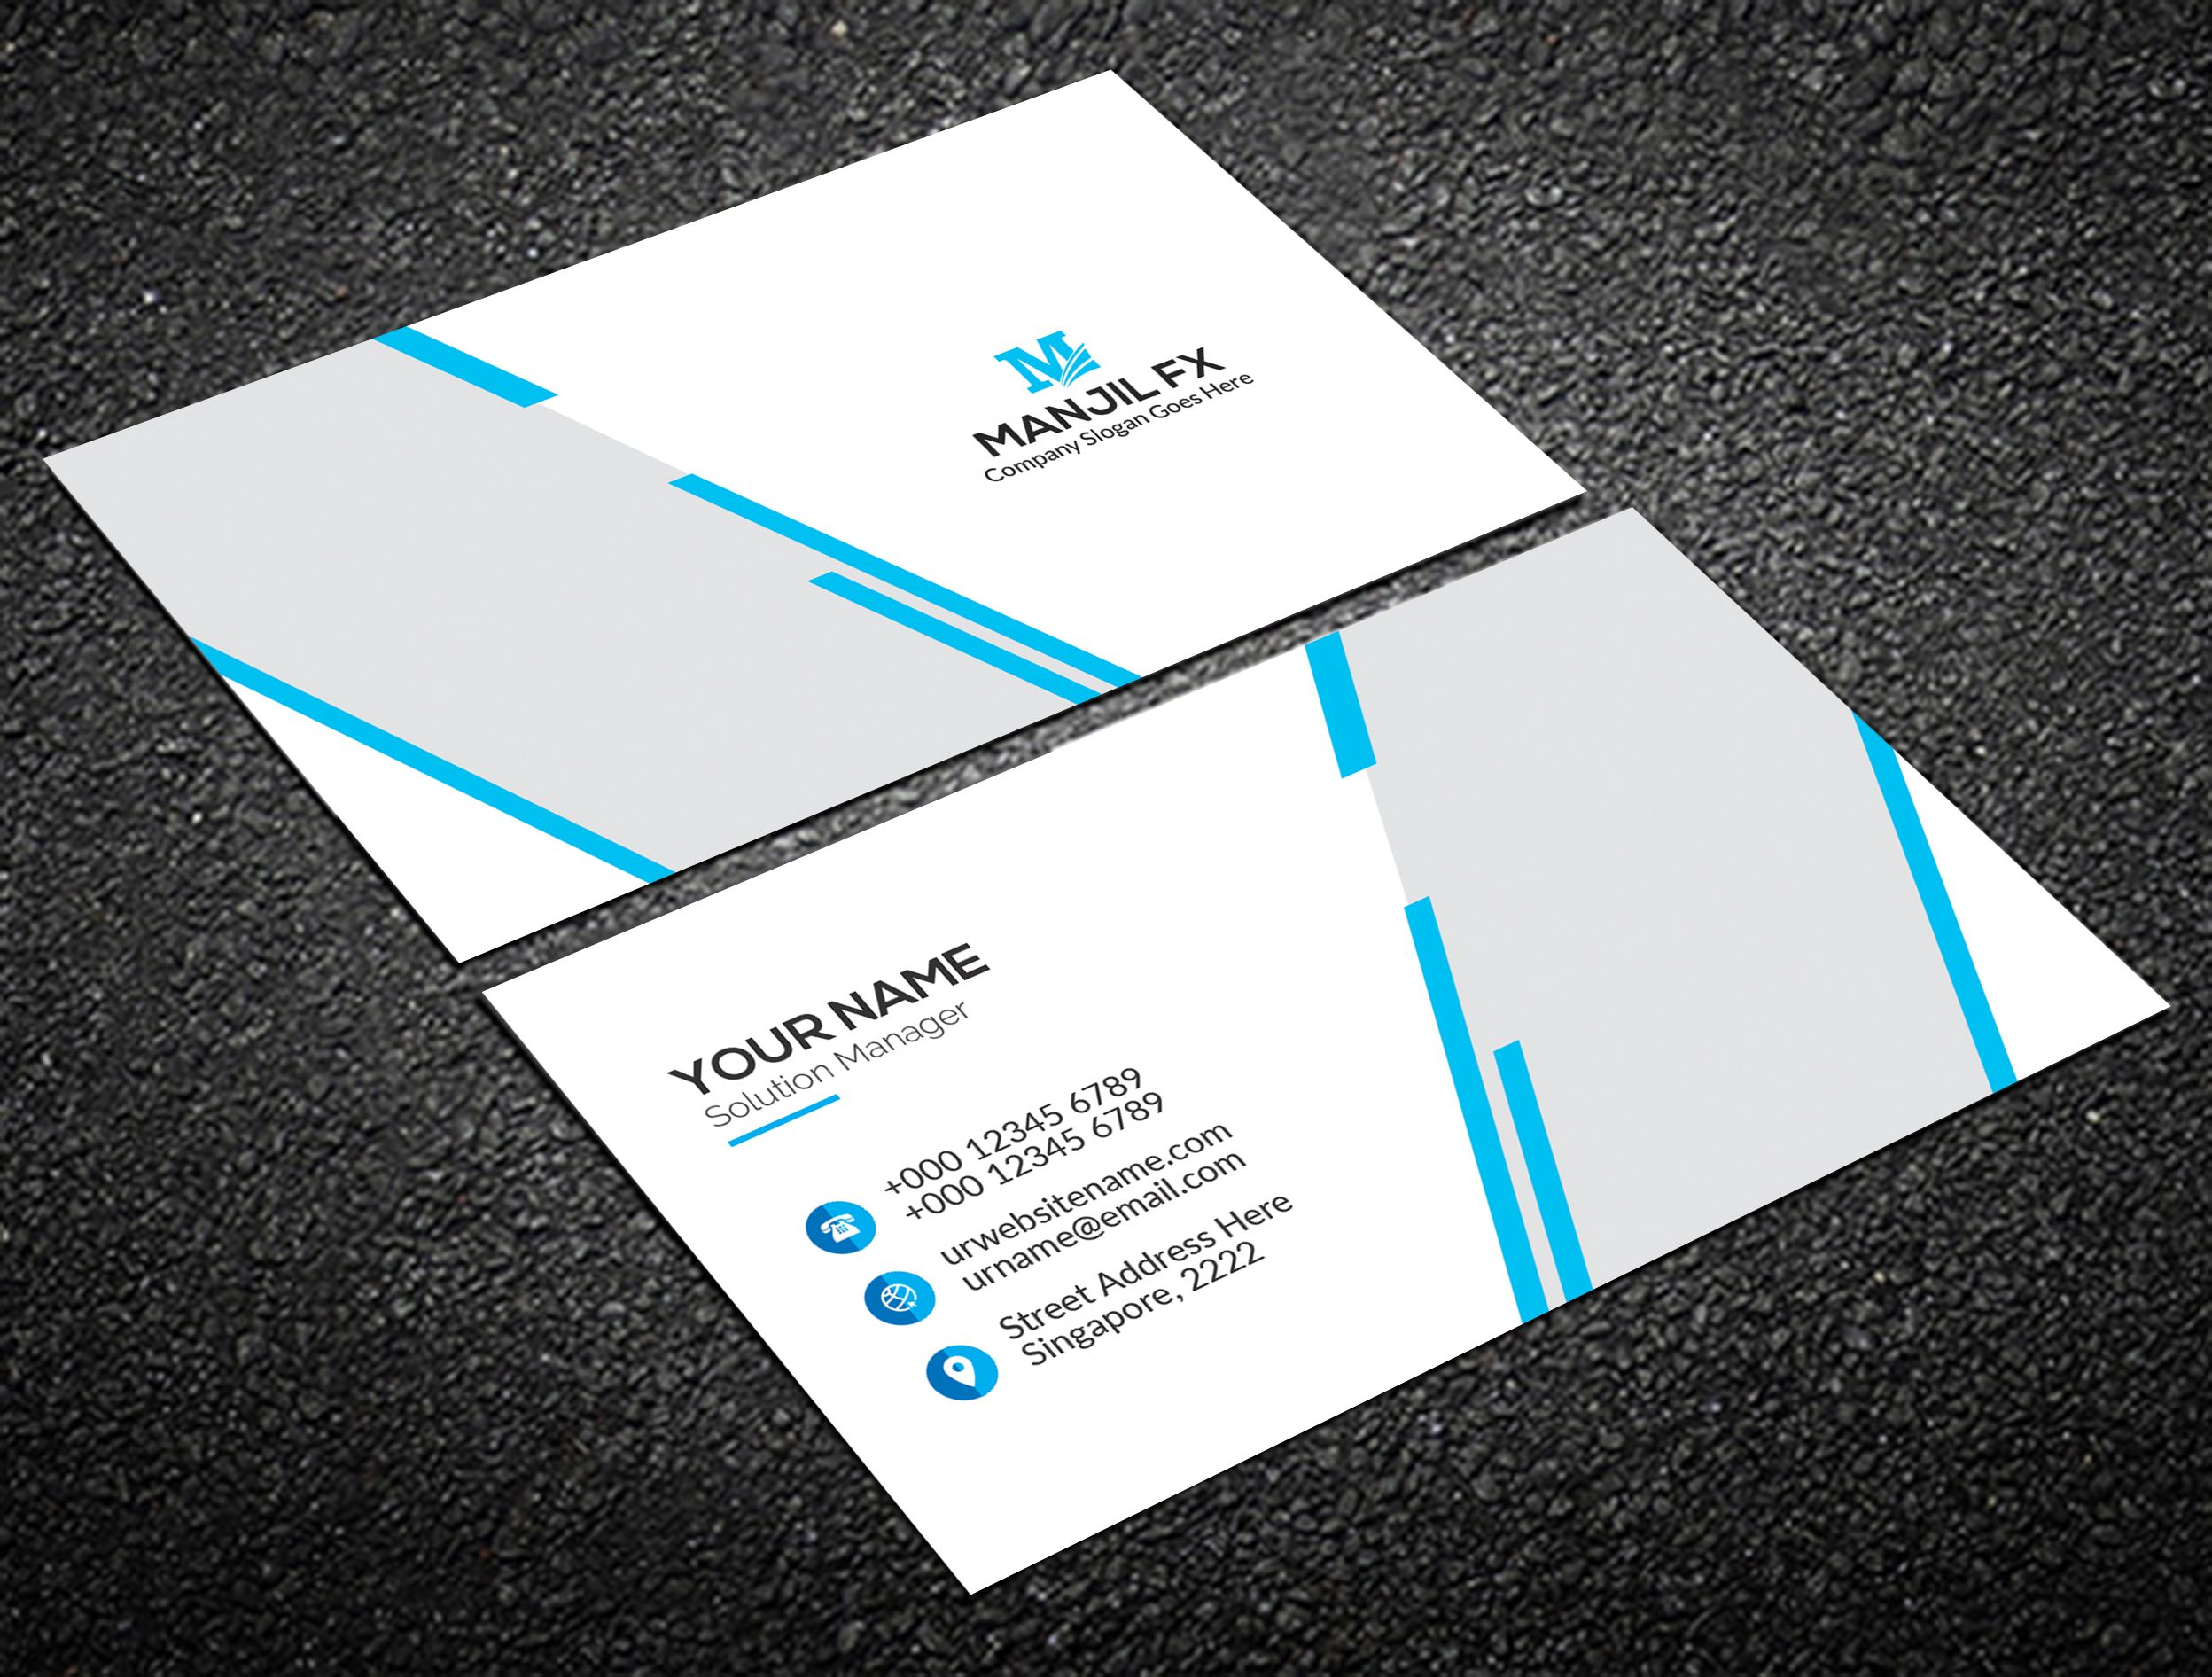 Unique business cards design within 2 hours unique business cards unique business cards design within 2 hours reheart Choice Image